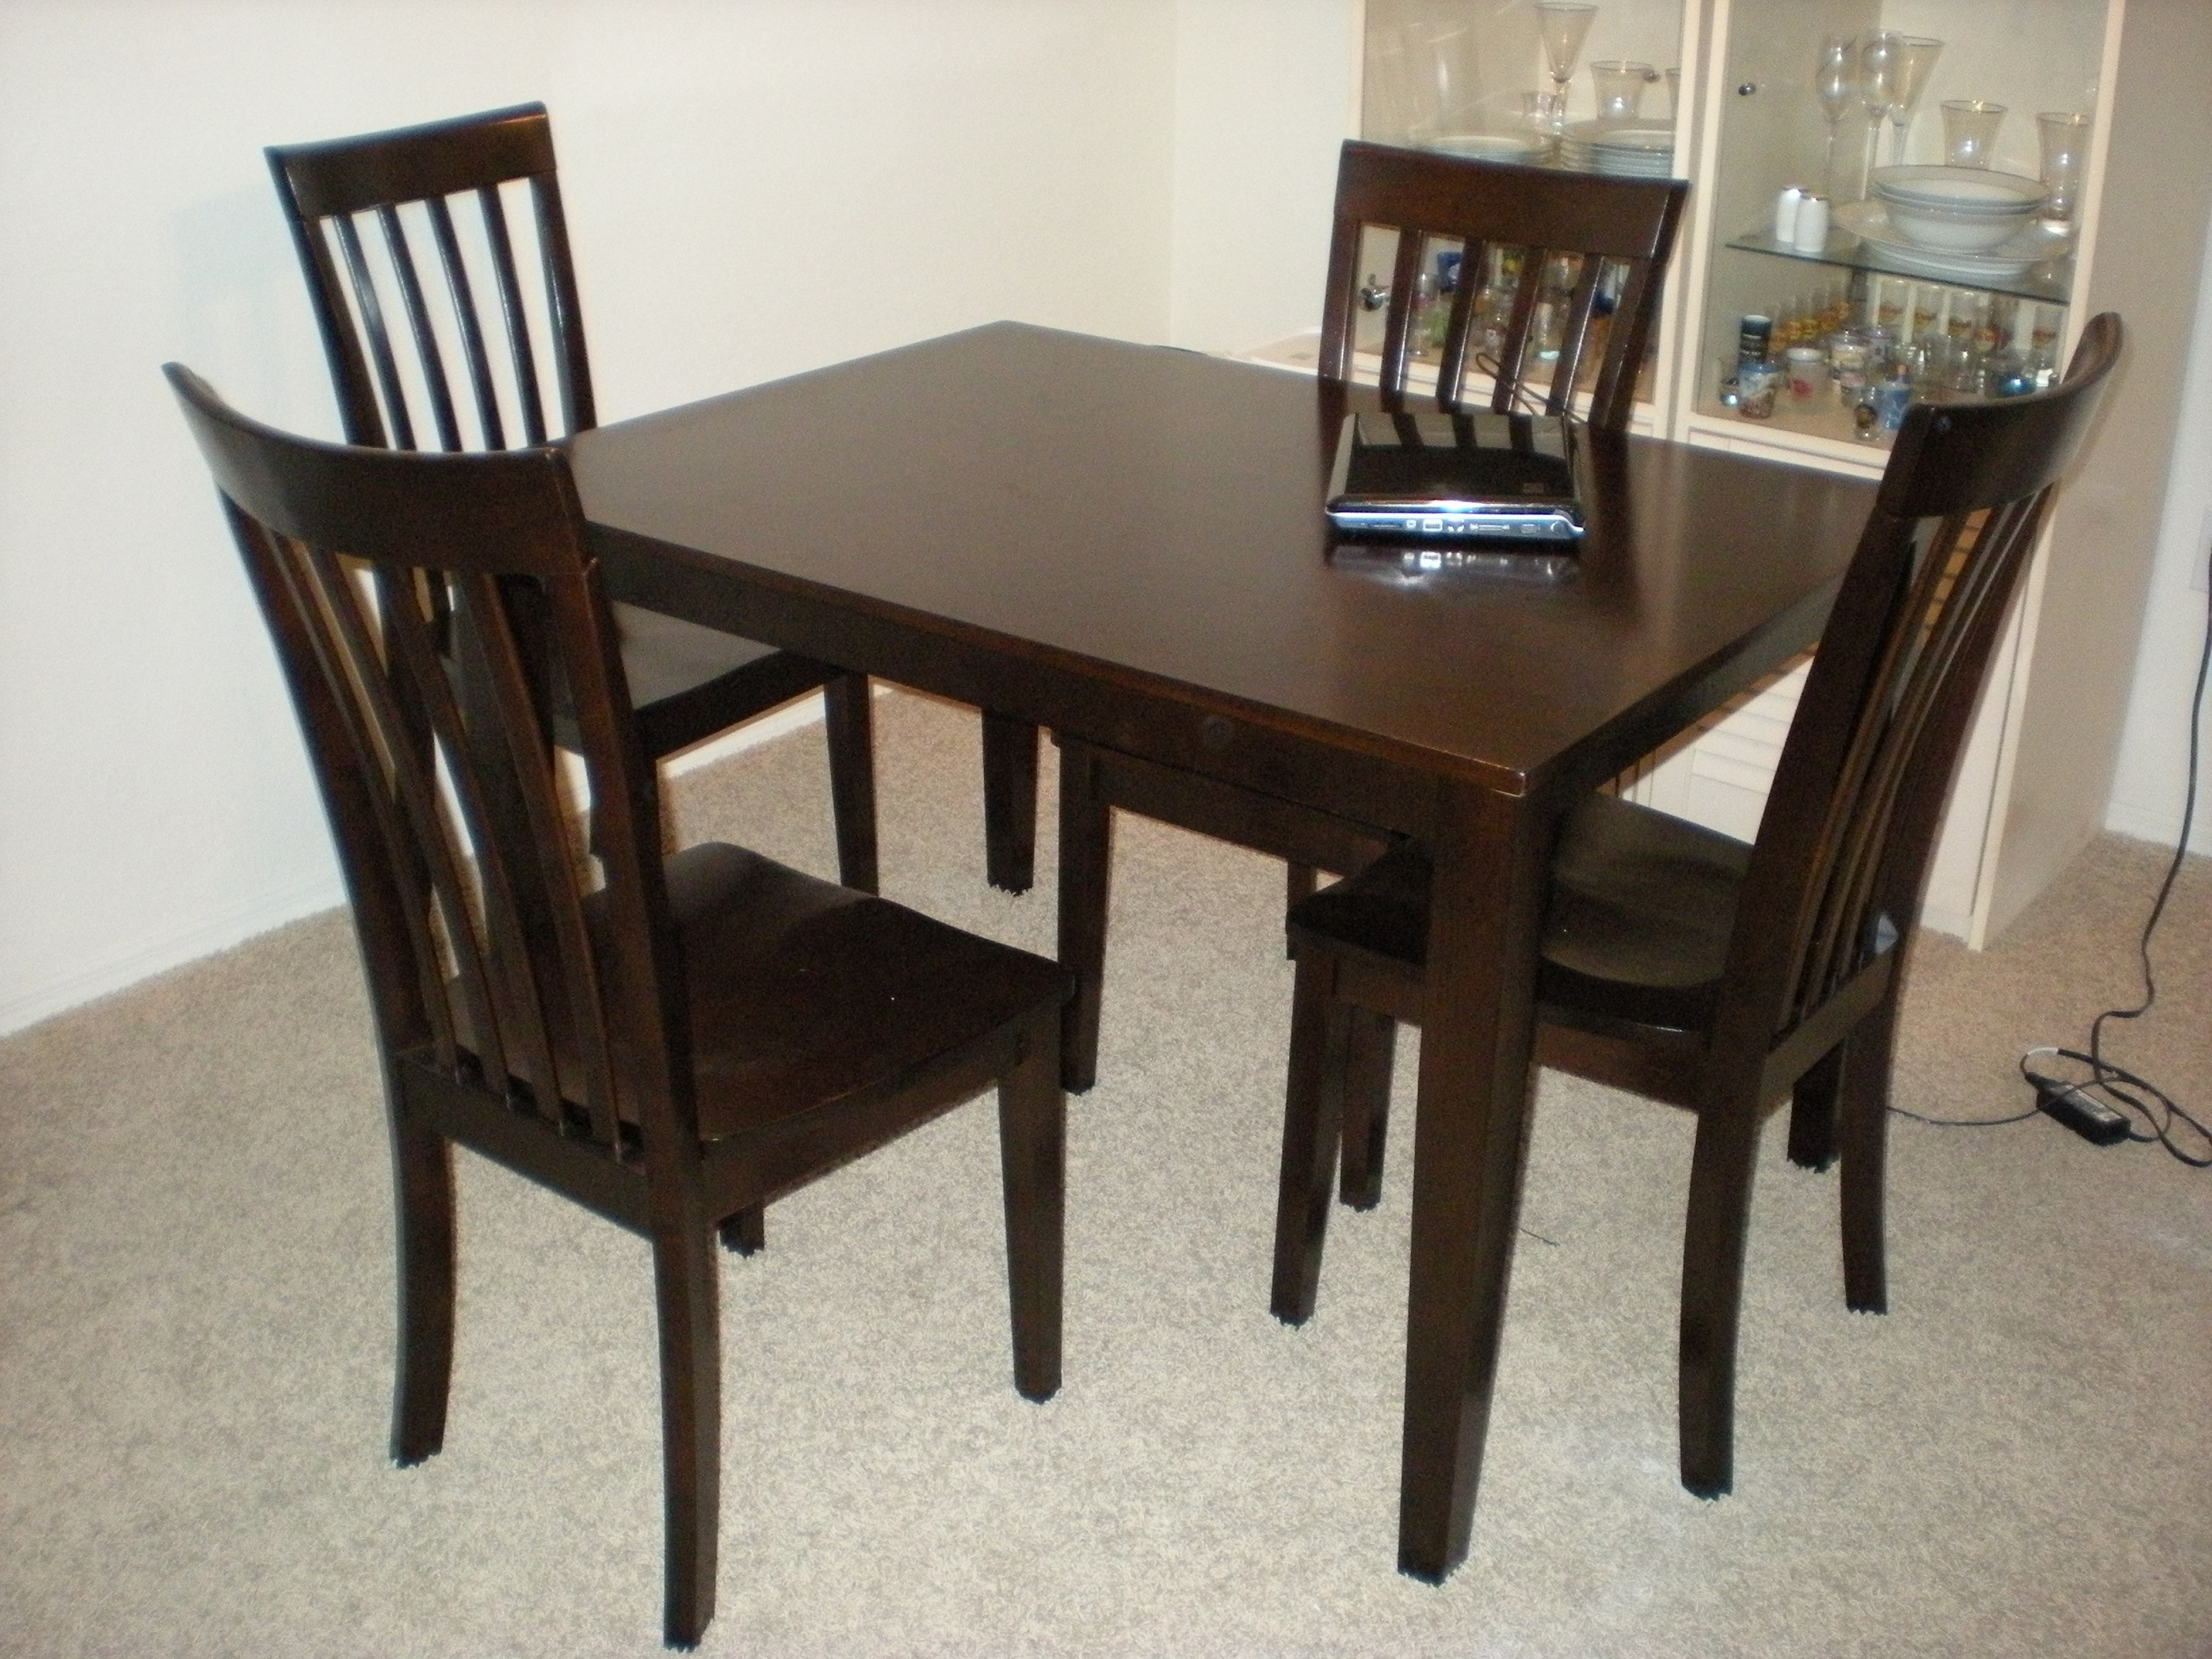 Latest Dining Room: Surprising Wooden Dining Room Furniture, Wood Table Set In Dark Wood Dining Tables And Chairs (View 17 of 25)